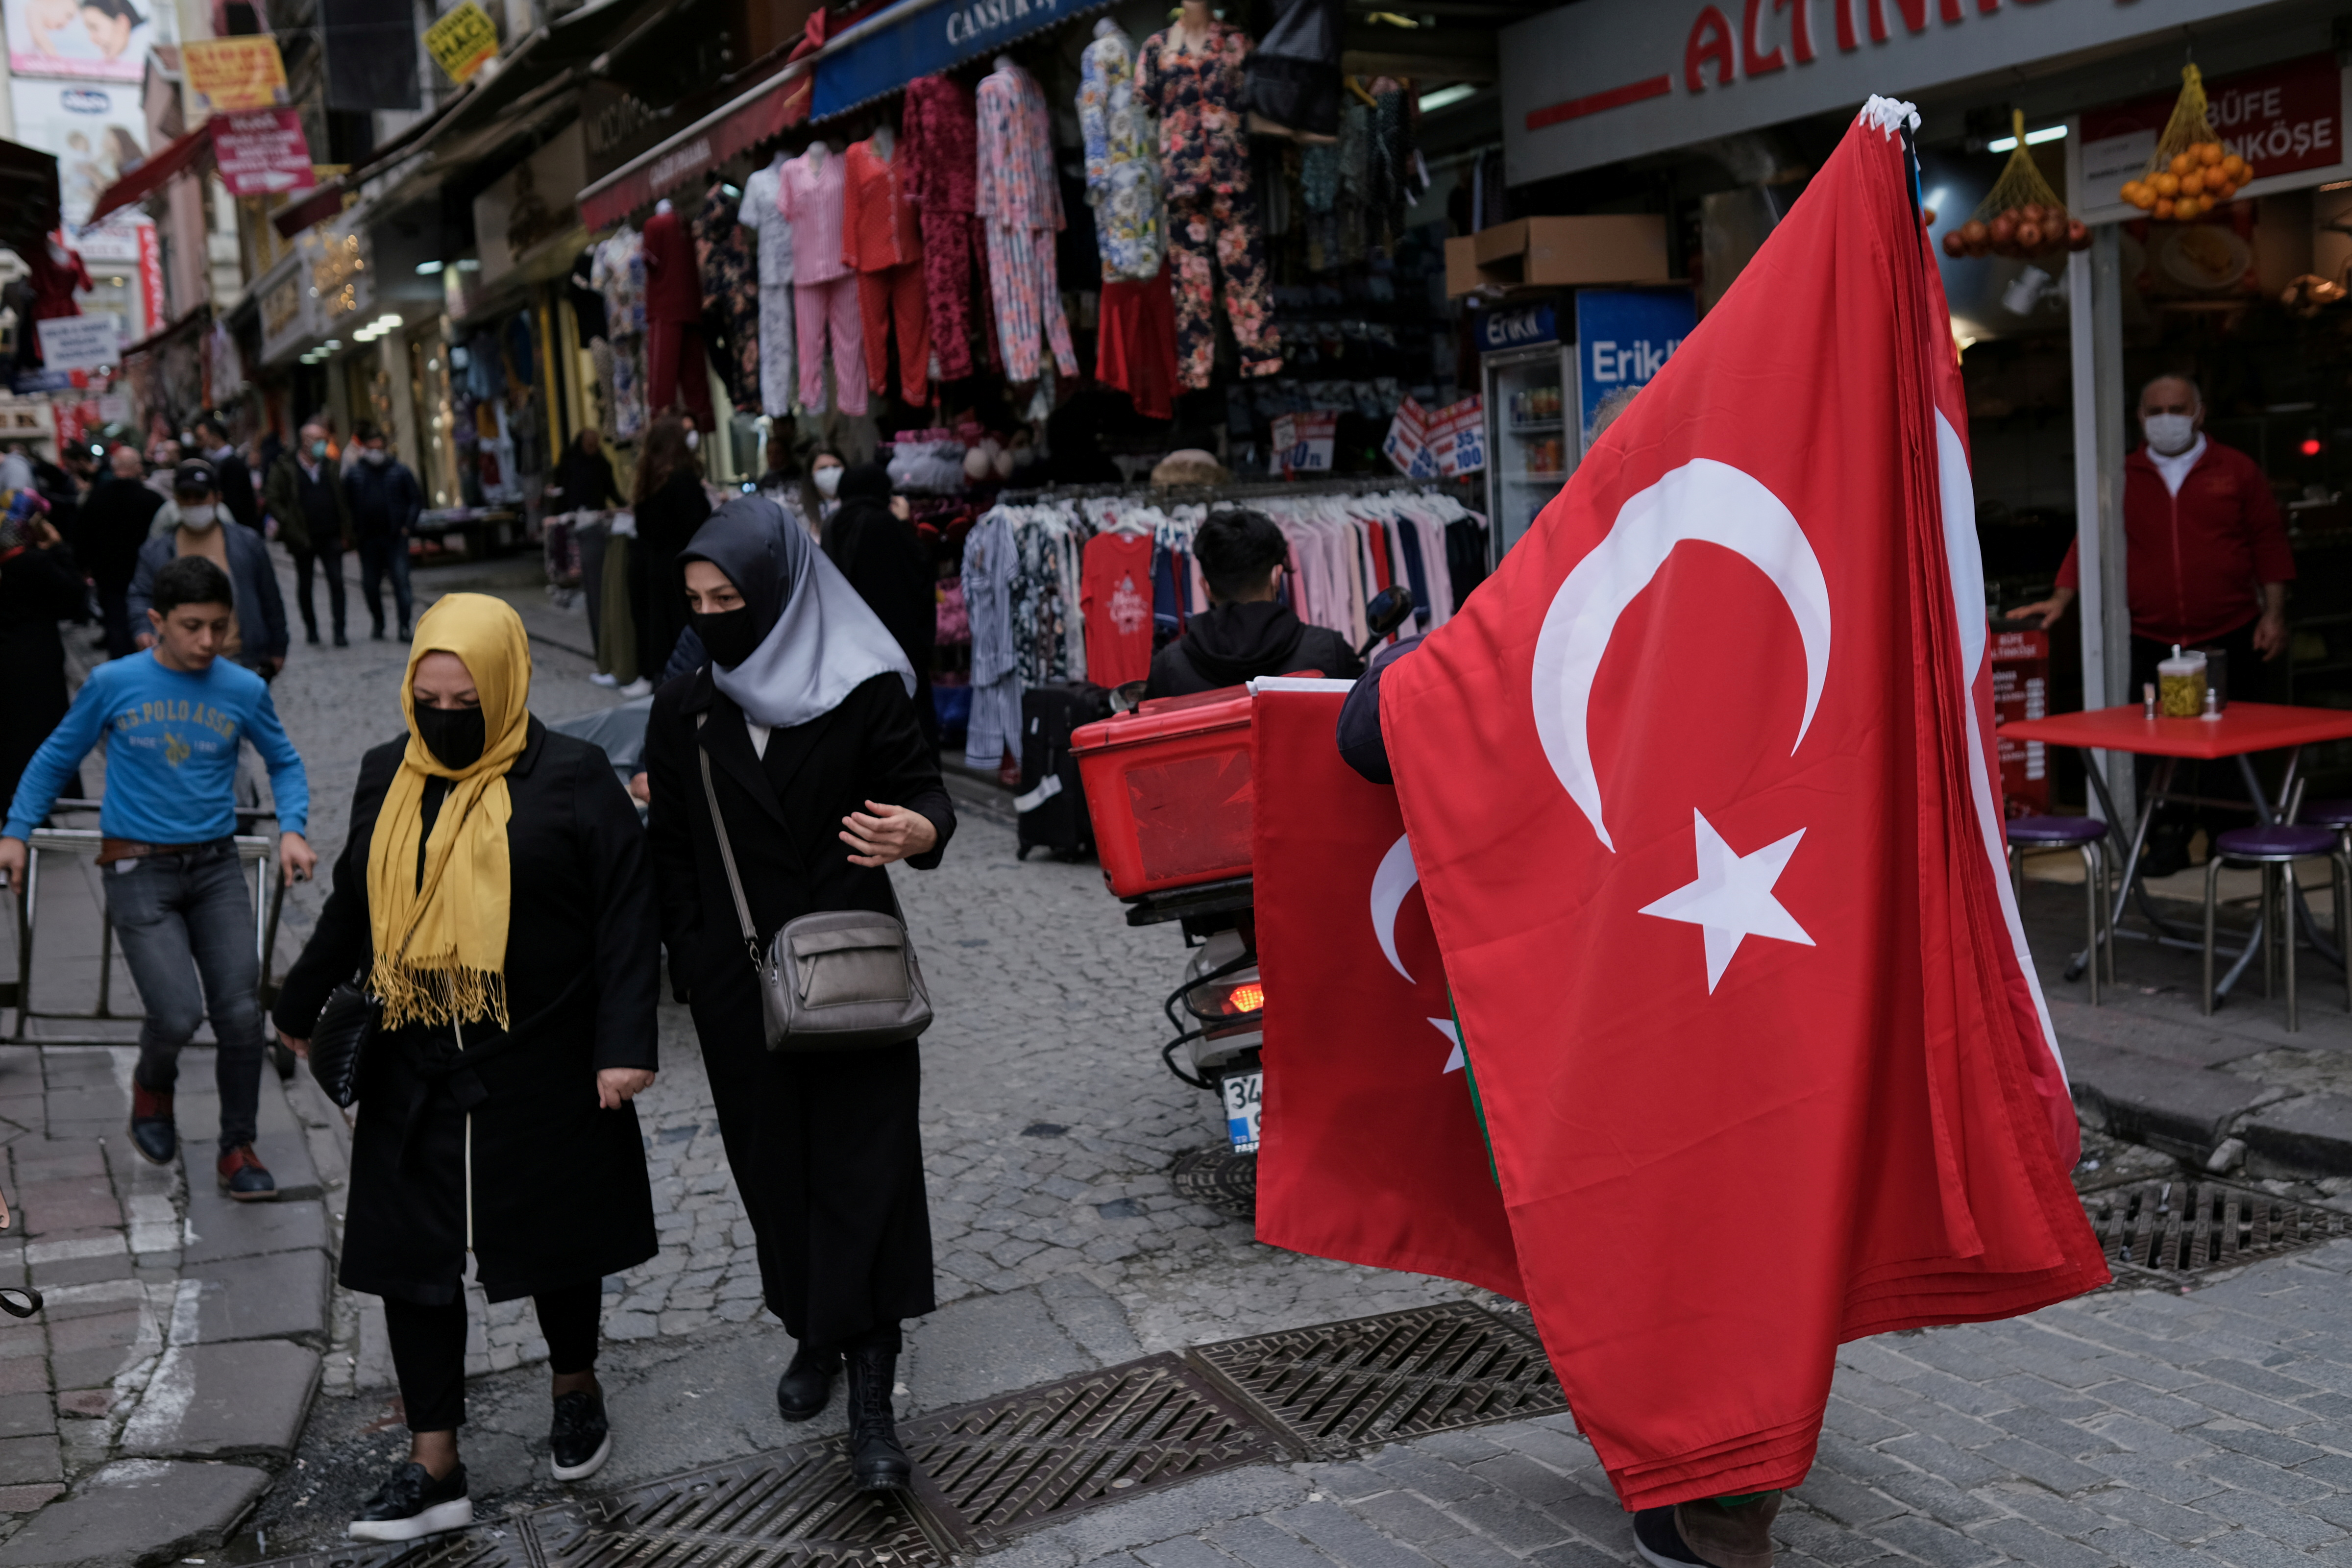 A street vendor sells Turkish national flags at Mahmutpasa street, a popular middle-class shopping district, in Istanbul, Turkey March 22, 2021. REUTERS/Murad Sezer/